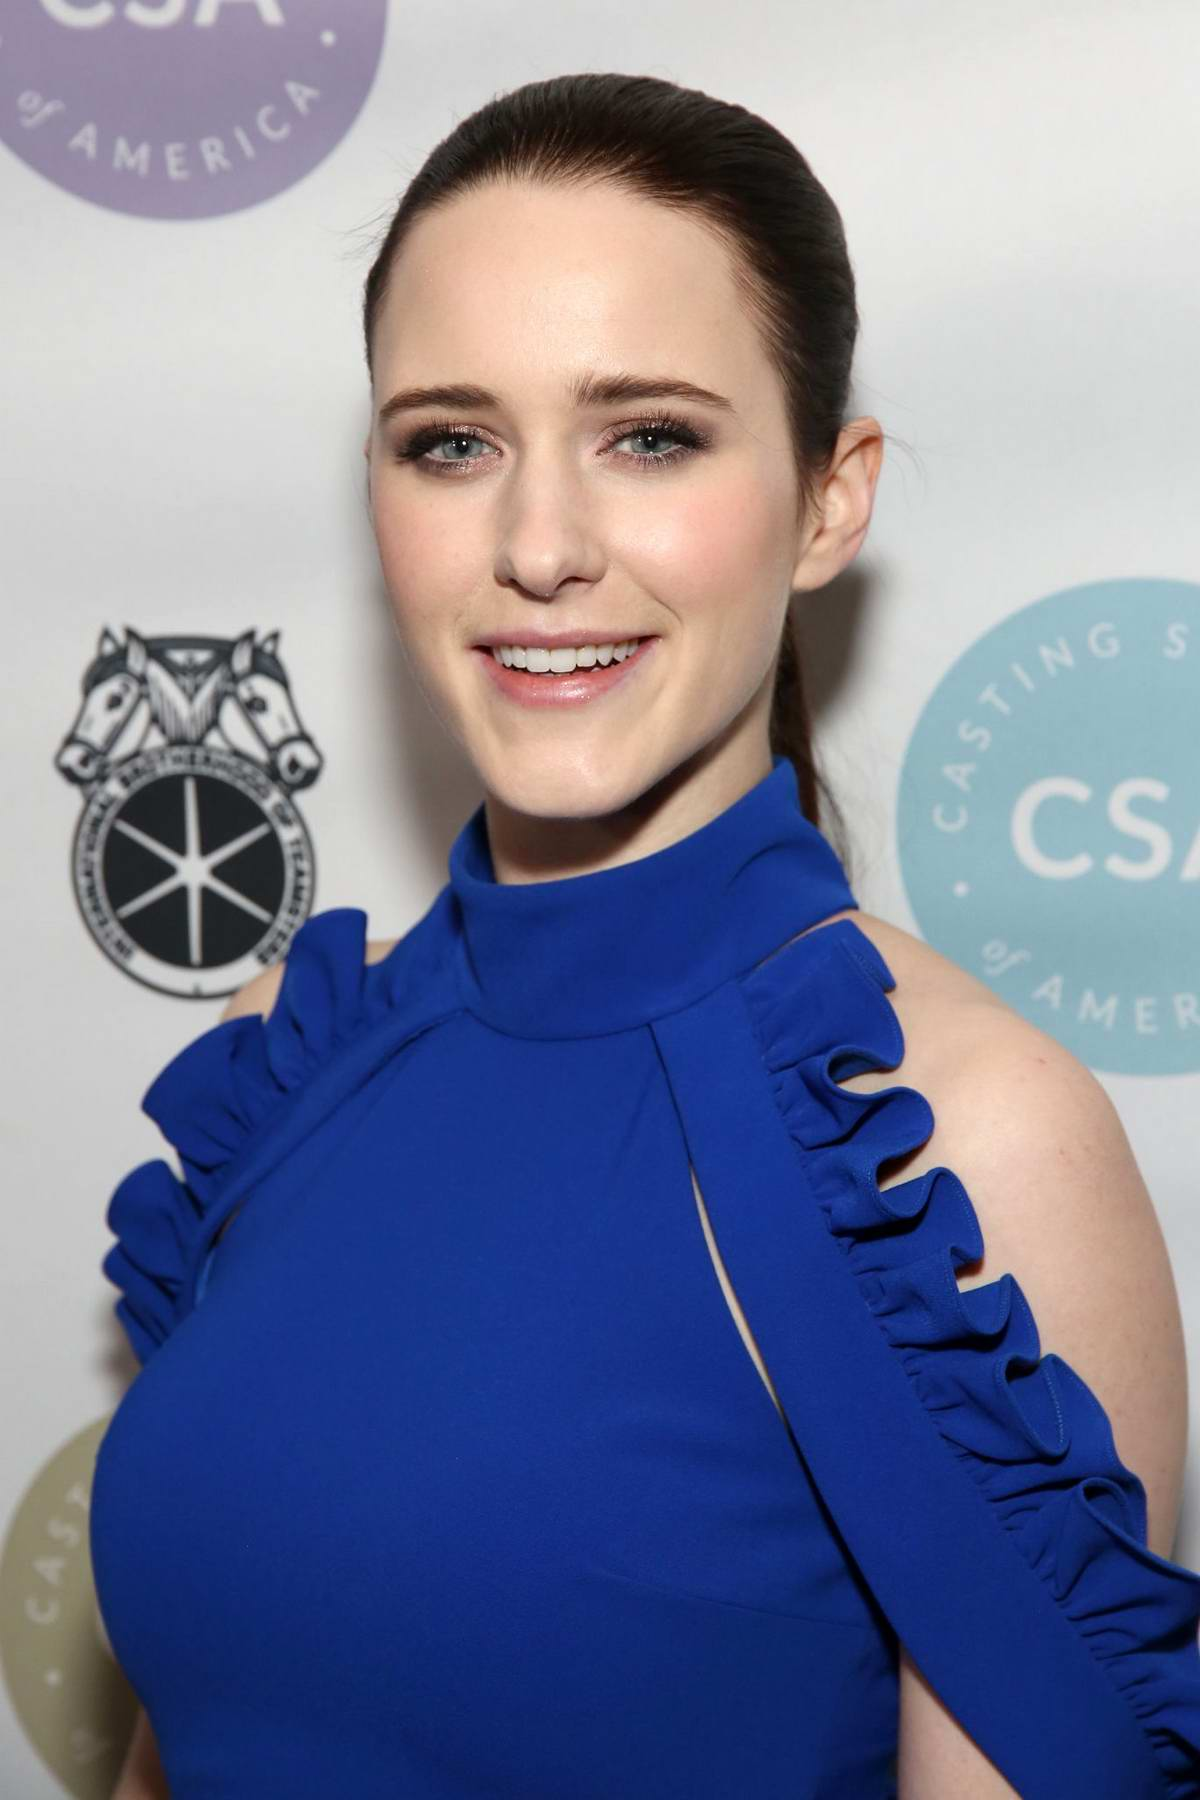 Rachel Brosnahan attends 34th Annual Artios Awards at Stage 48 in New York City